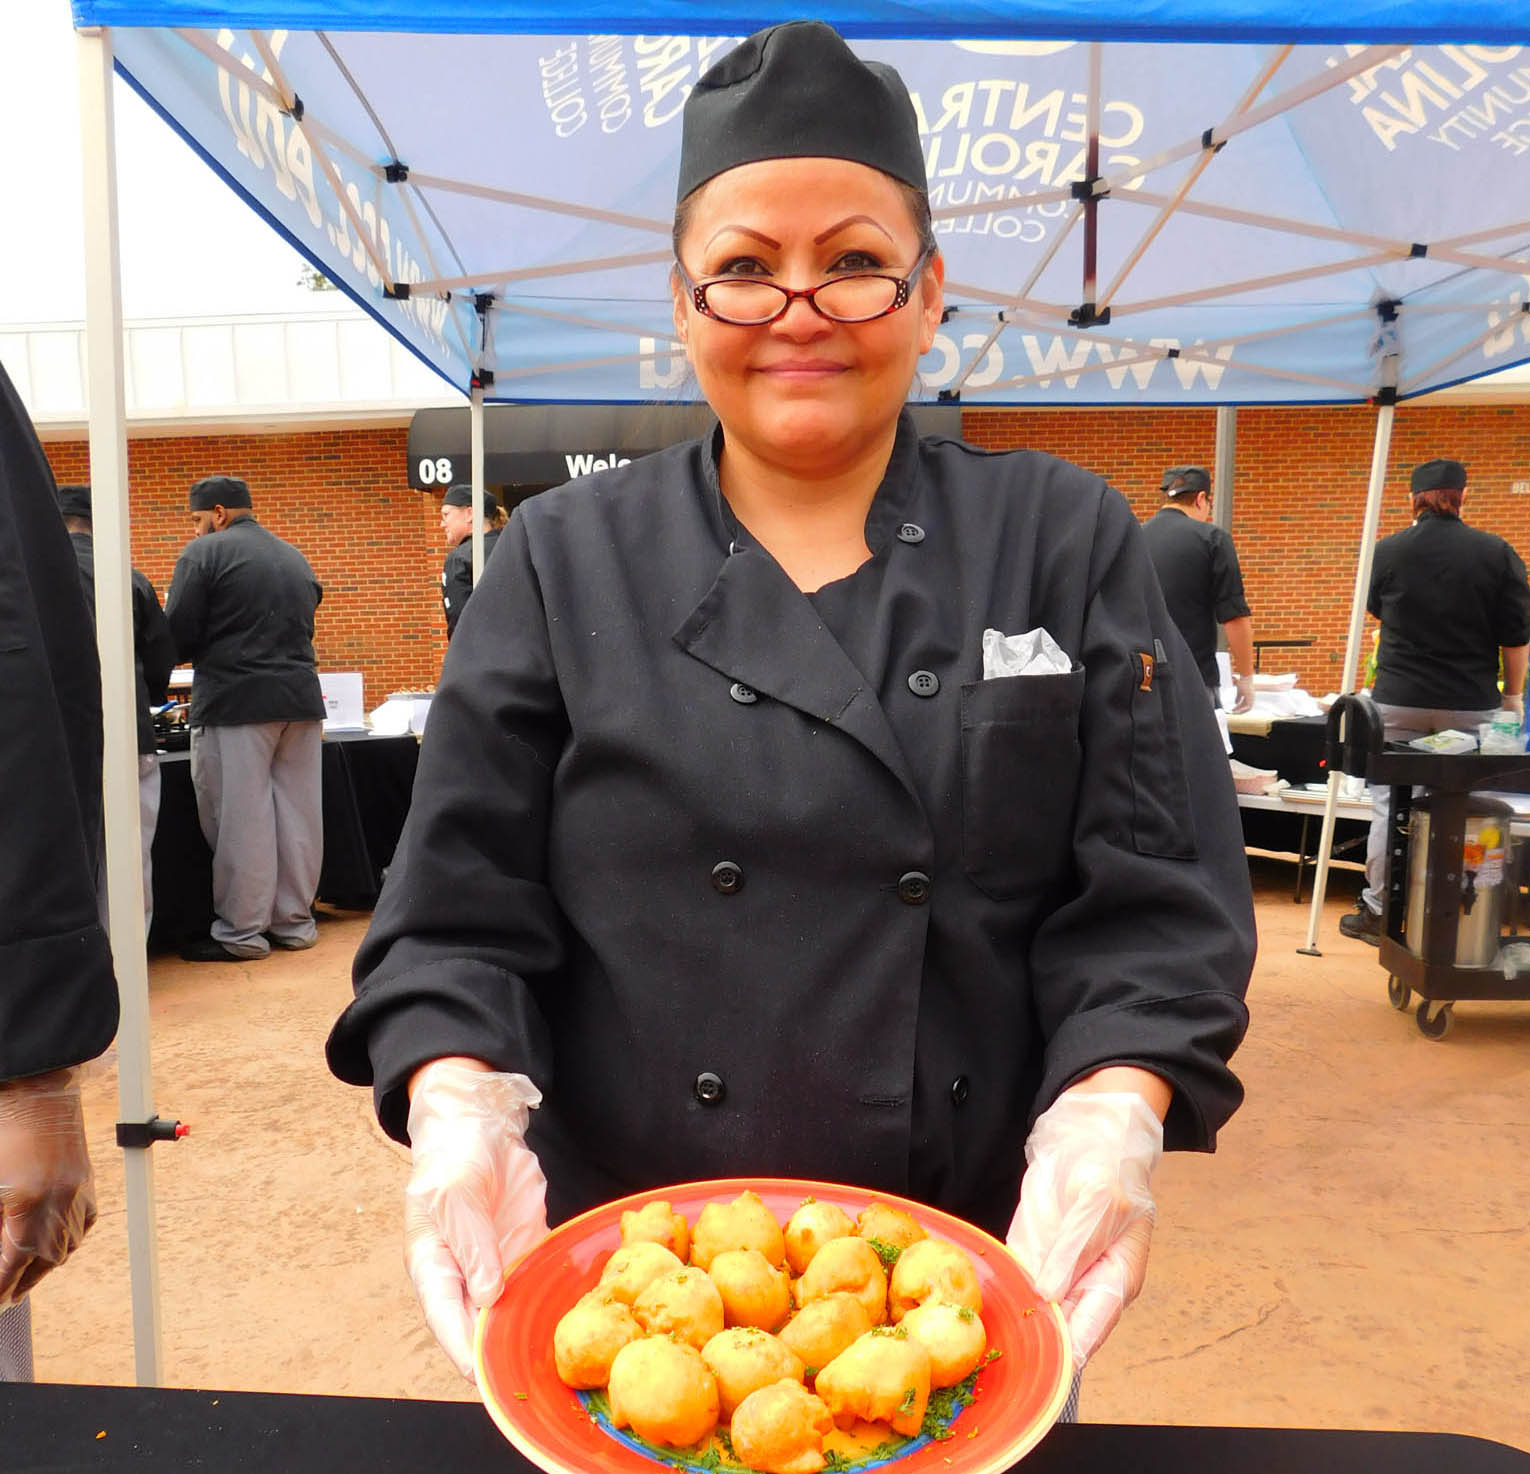 Click to enlarge,  Doni Shepard Steele, of Siler City, with her Bacon Pimento Cheese Bombs, won the People's Choice Award at the Central Carolina Community College 3rd Annual Culinary Showcase. The event, featuring dishes by Culinary & Hospitality Arts students represented from Chatham, Harnett, and Lee counties, was held April 11th on the Central Carolina Community College Lee Main Campus in Sanford. For more information on the CCCC Culinary & Hospitality Arts program, visit www.cccc.edu/culinaryarts/.